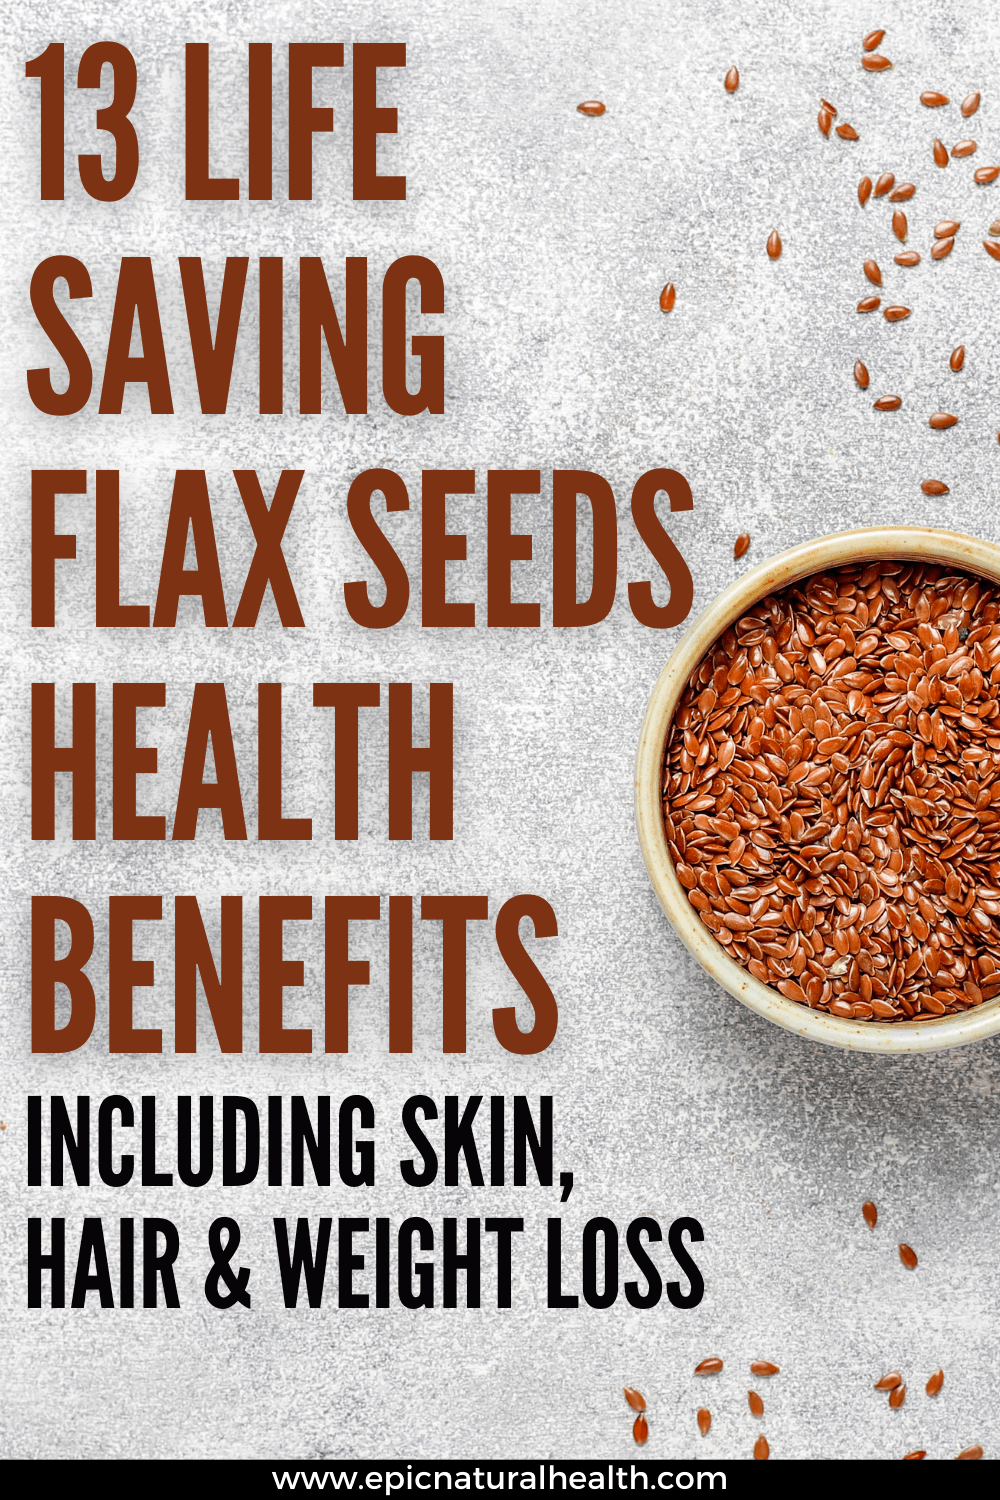 life saving flaxseeds health benefits